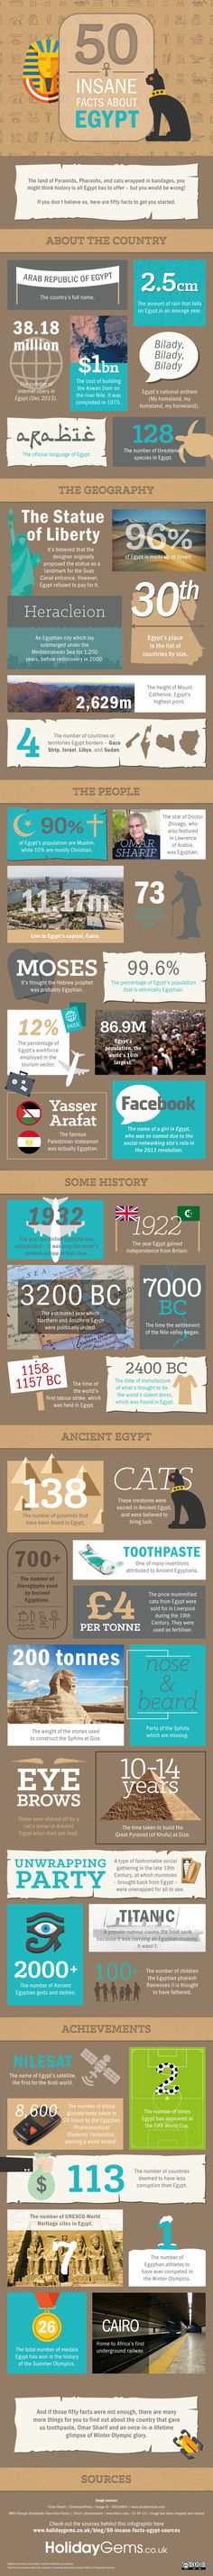 50 Insane Facts About Egypt